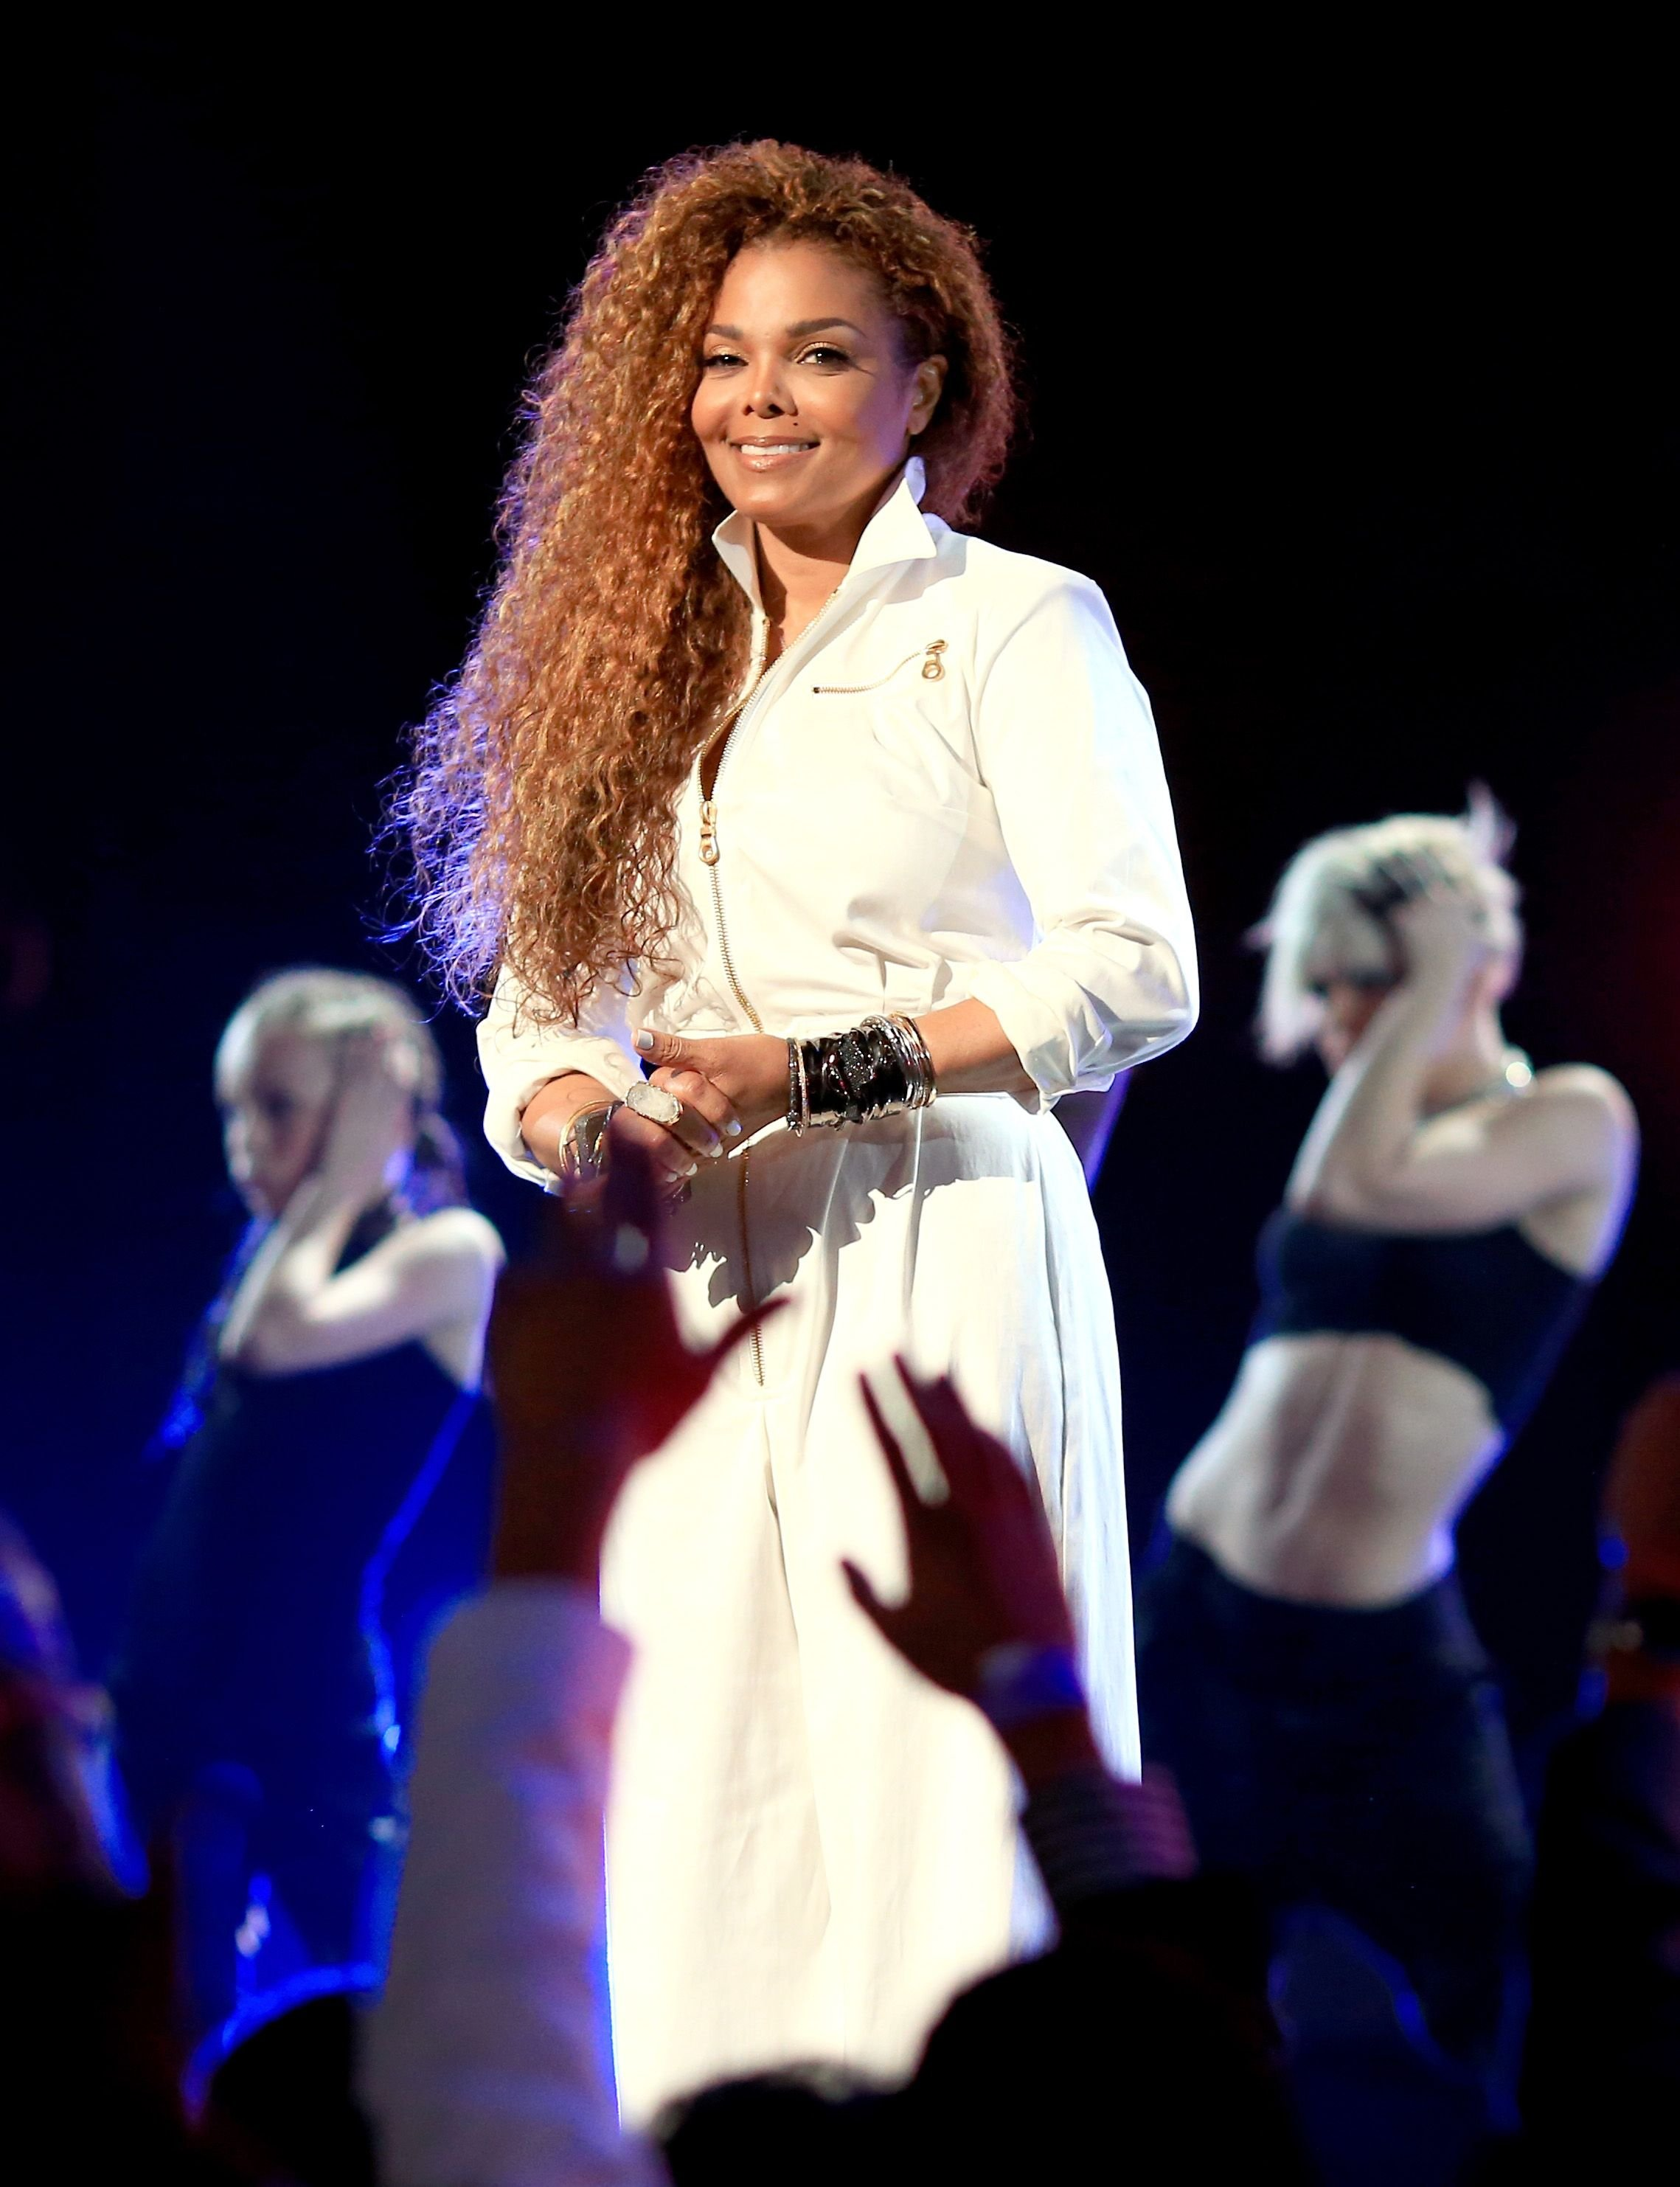 Janet Jackson attends the BET Awards on June 28, 2015 in California. | Source: Getty Images